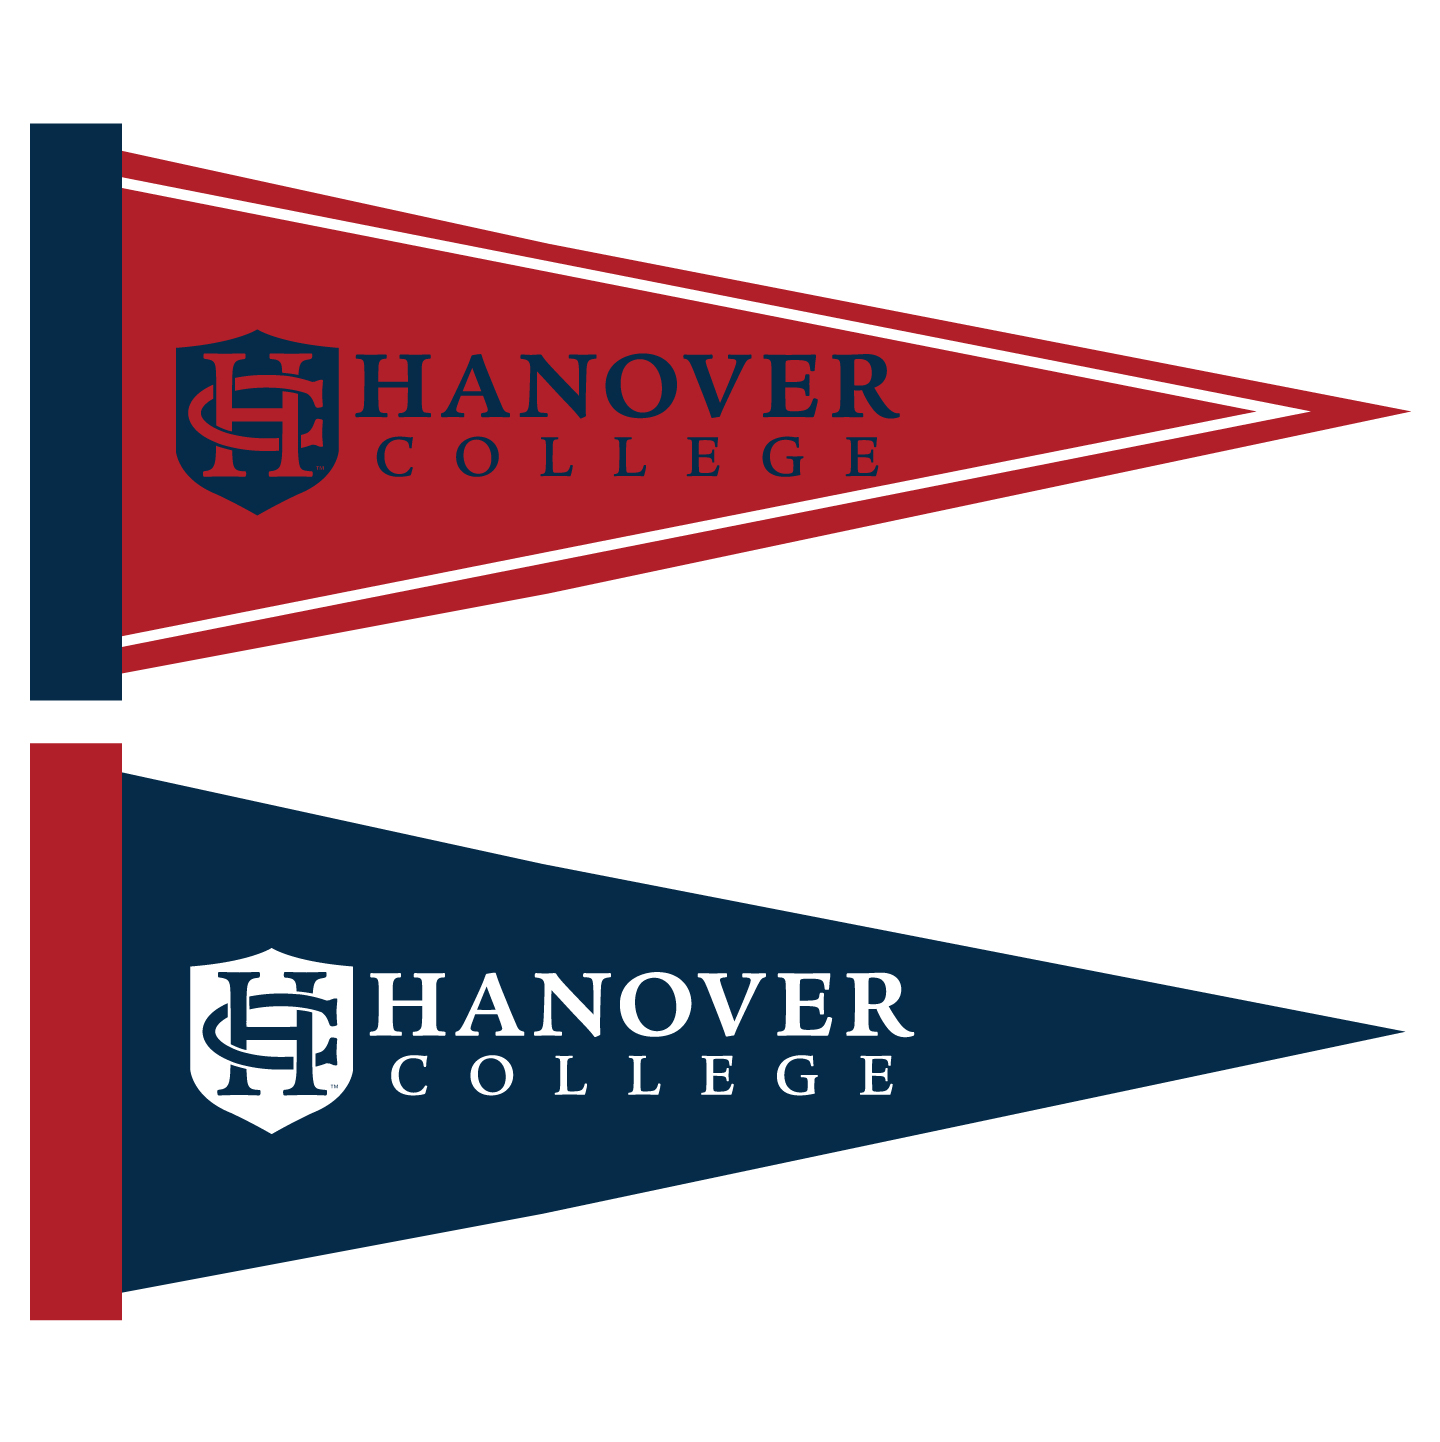 Hanover College maroon and navy pennants.